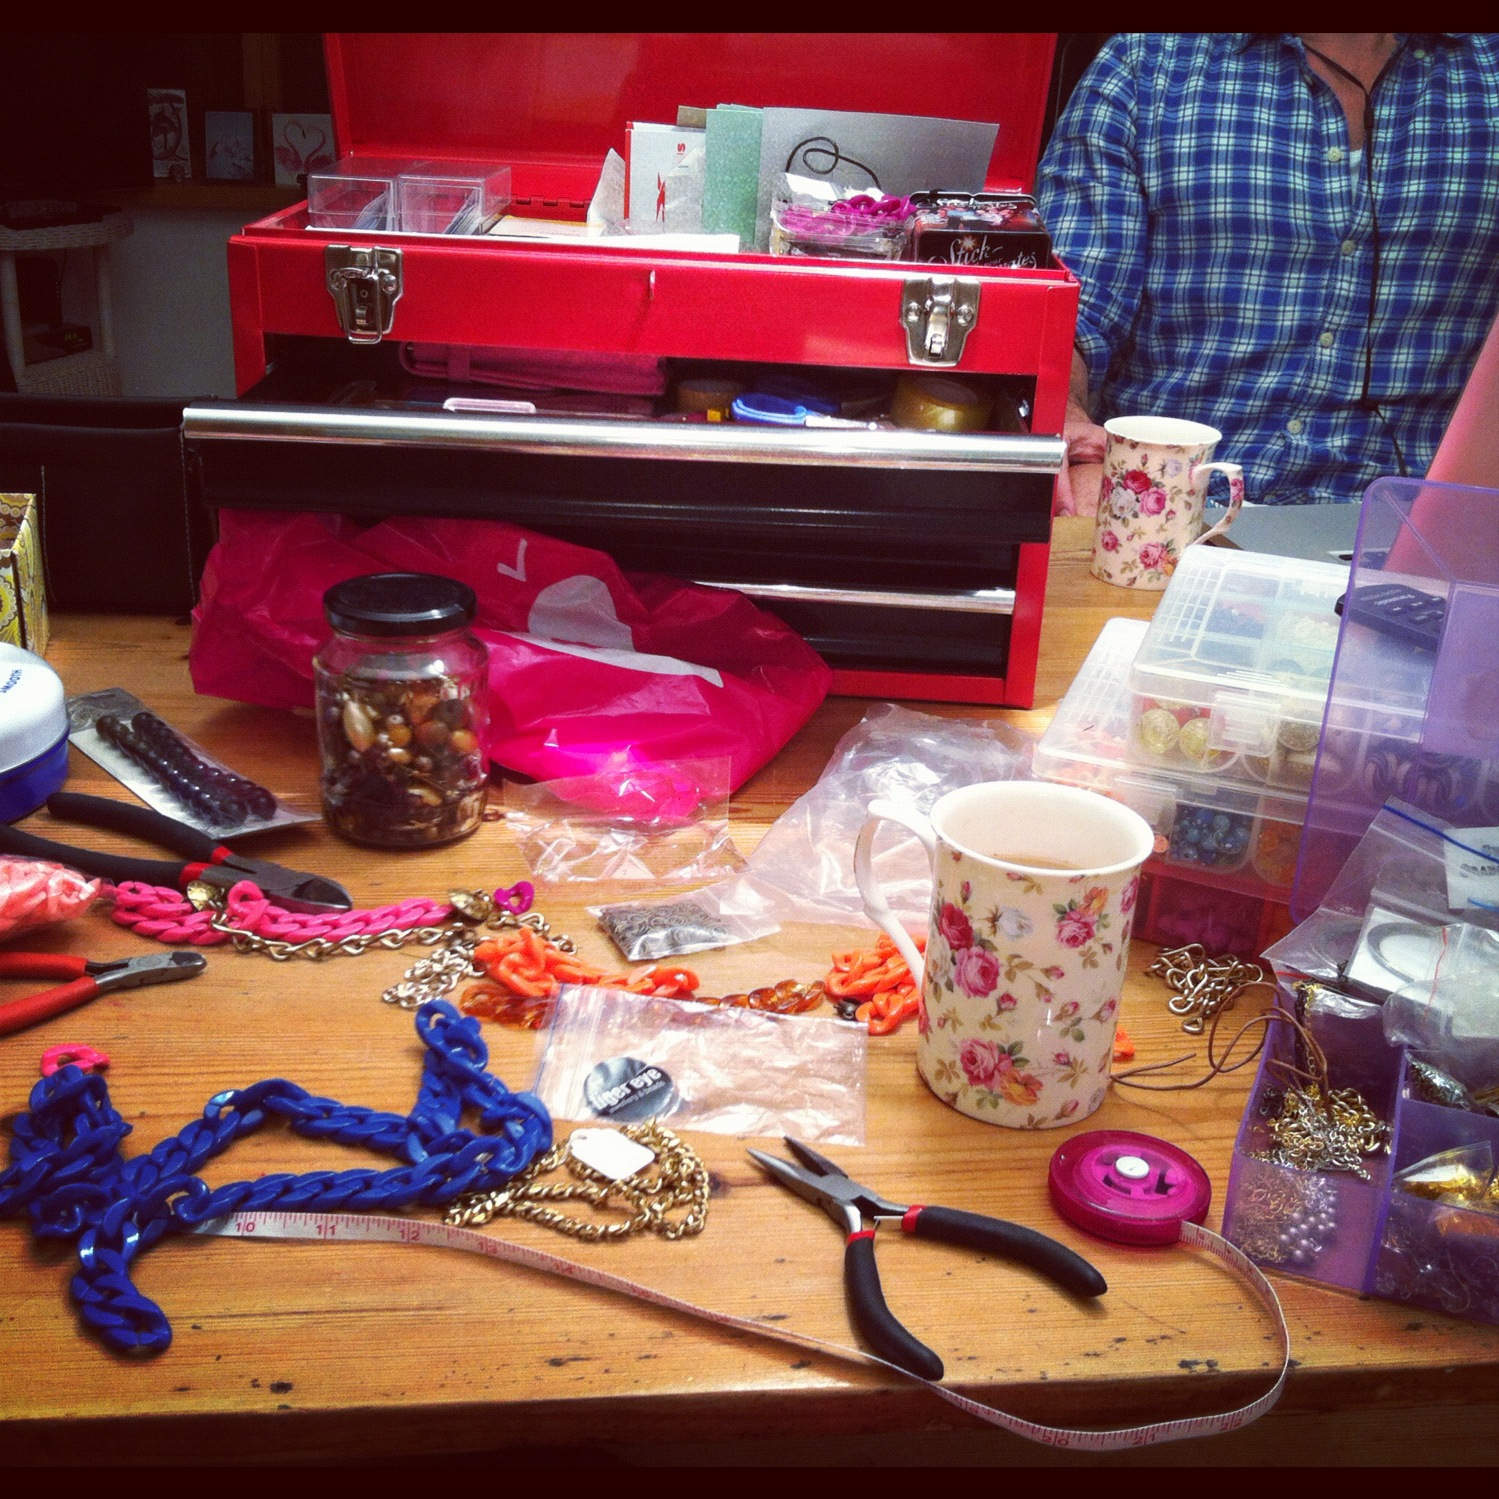 Jewellery making at the kitchen table